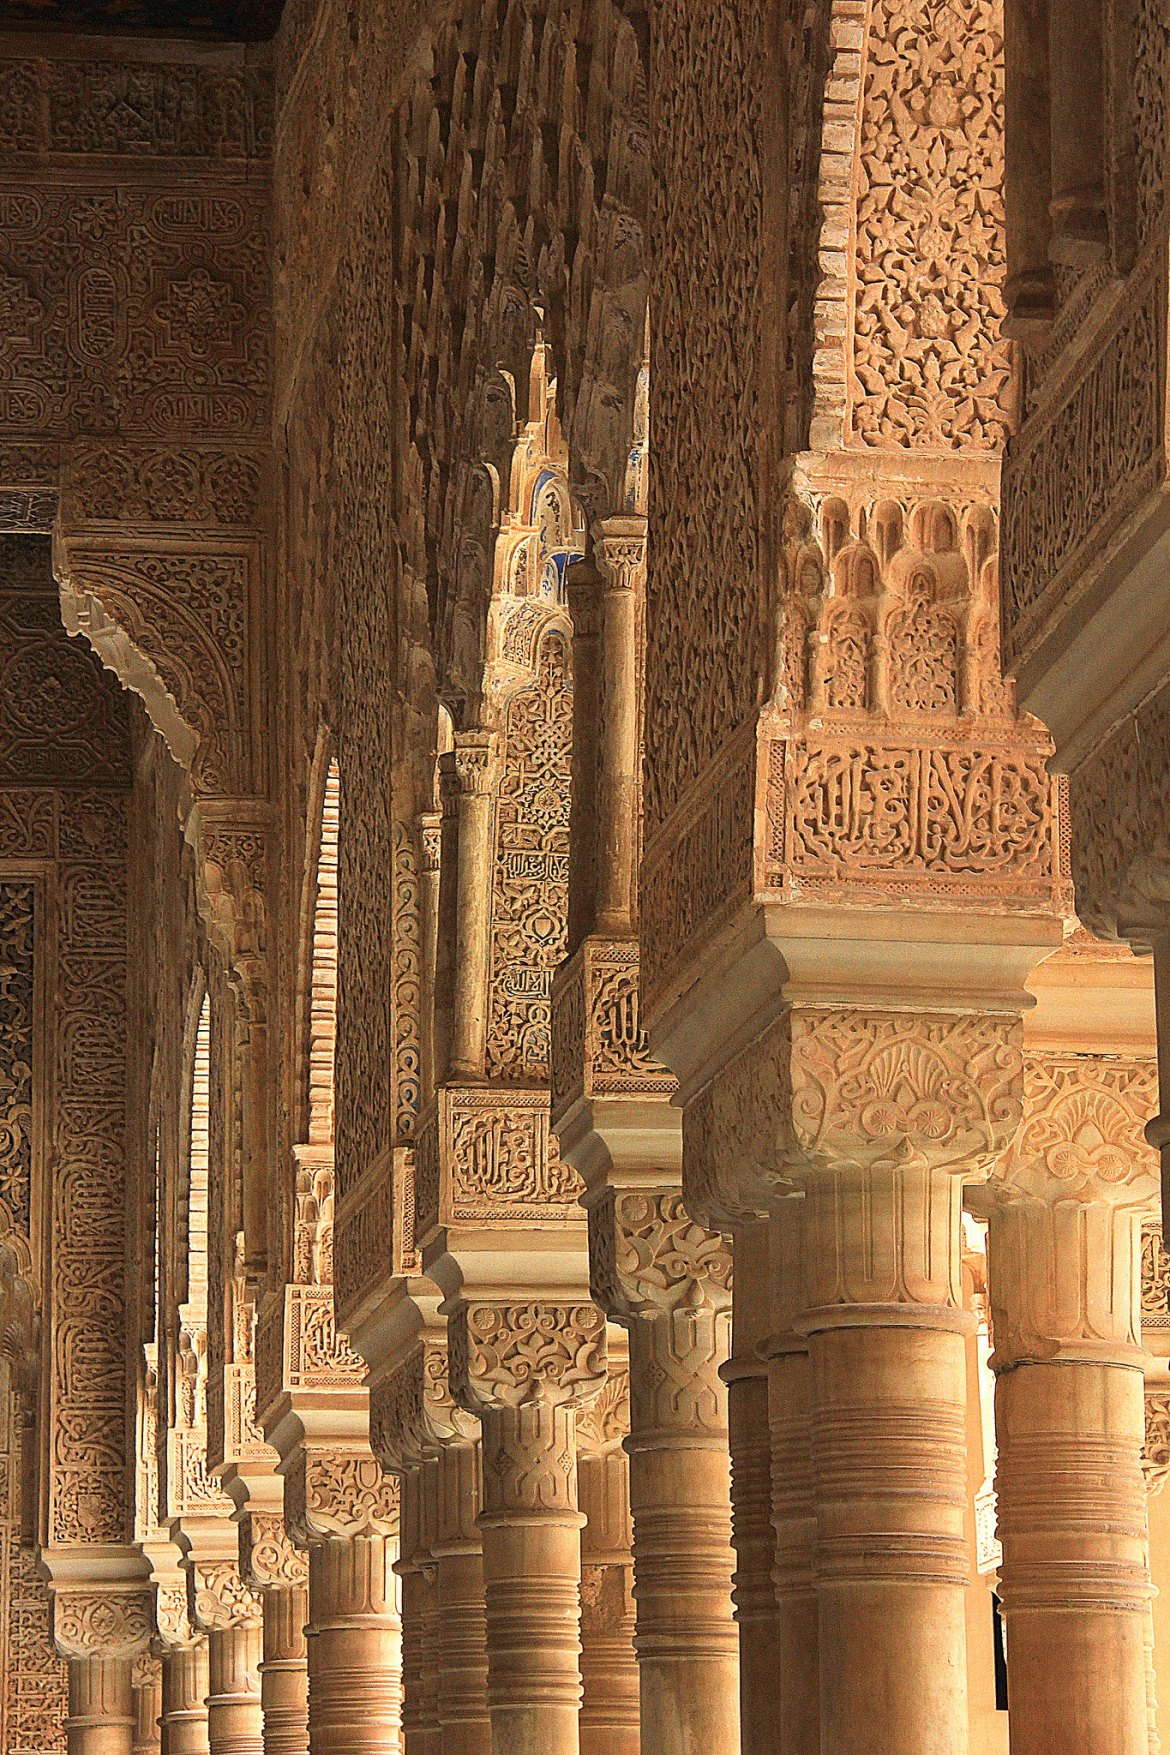 carved pillars of Nasirid Palace